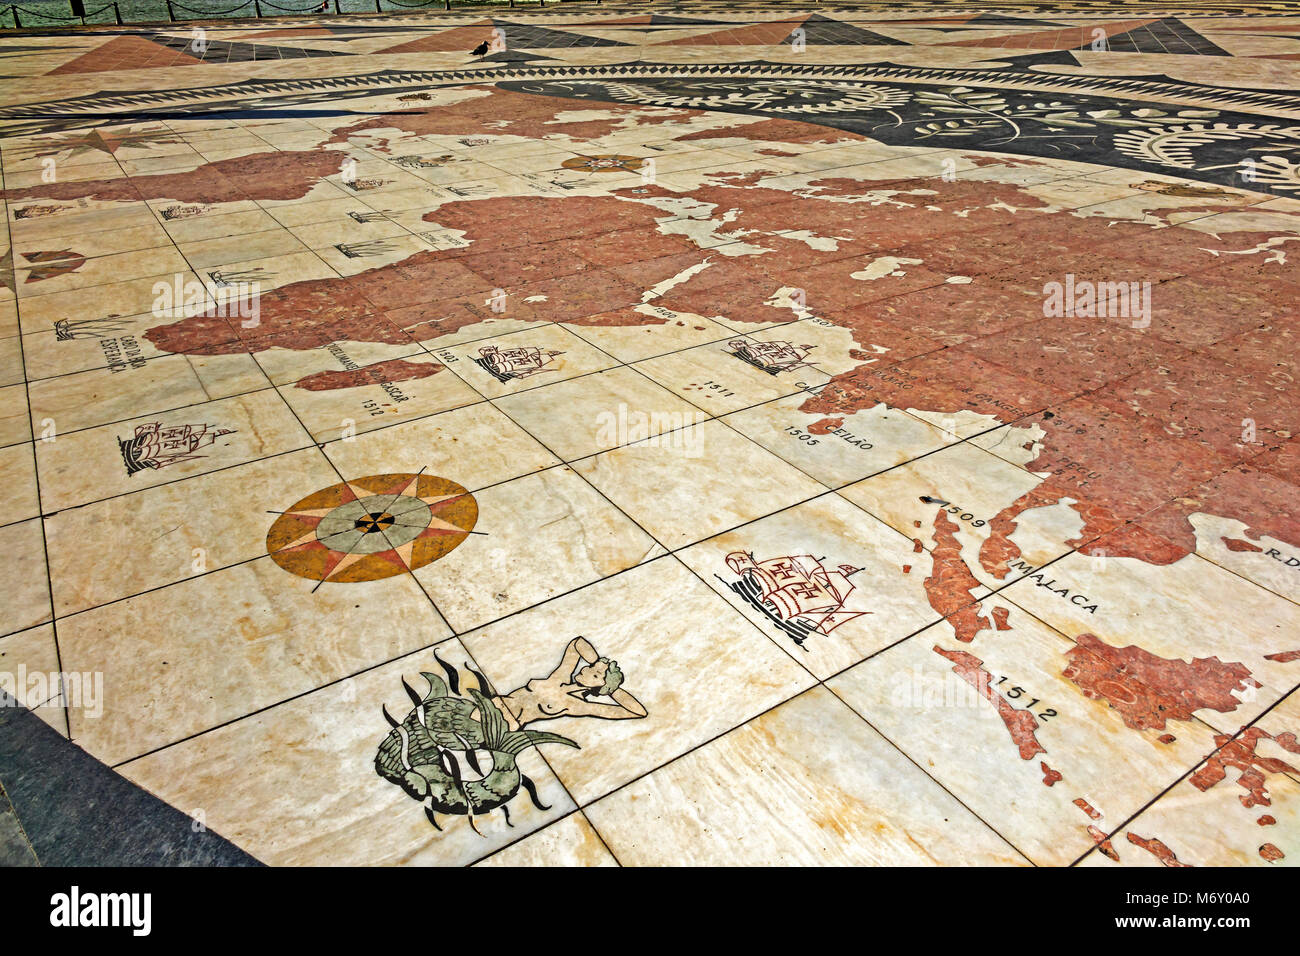 World Map At Monument To The Discoveries, Showing Explorations Lisbon Portugal - Stock Image